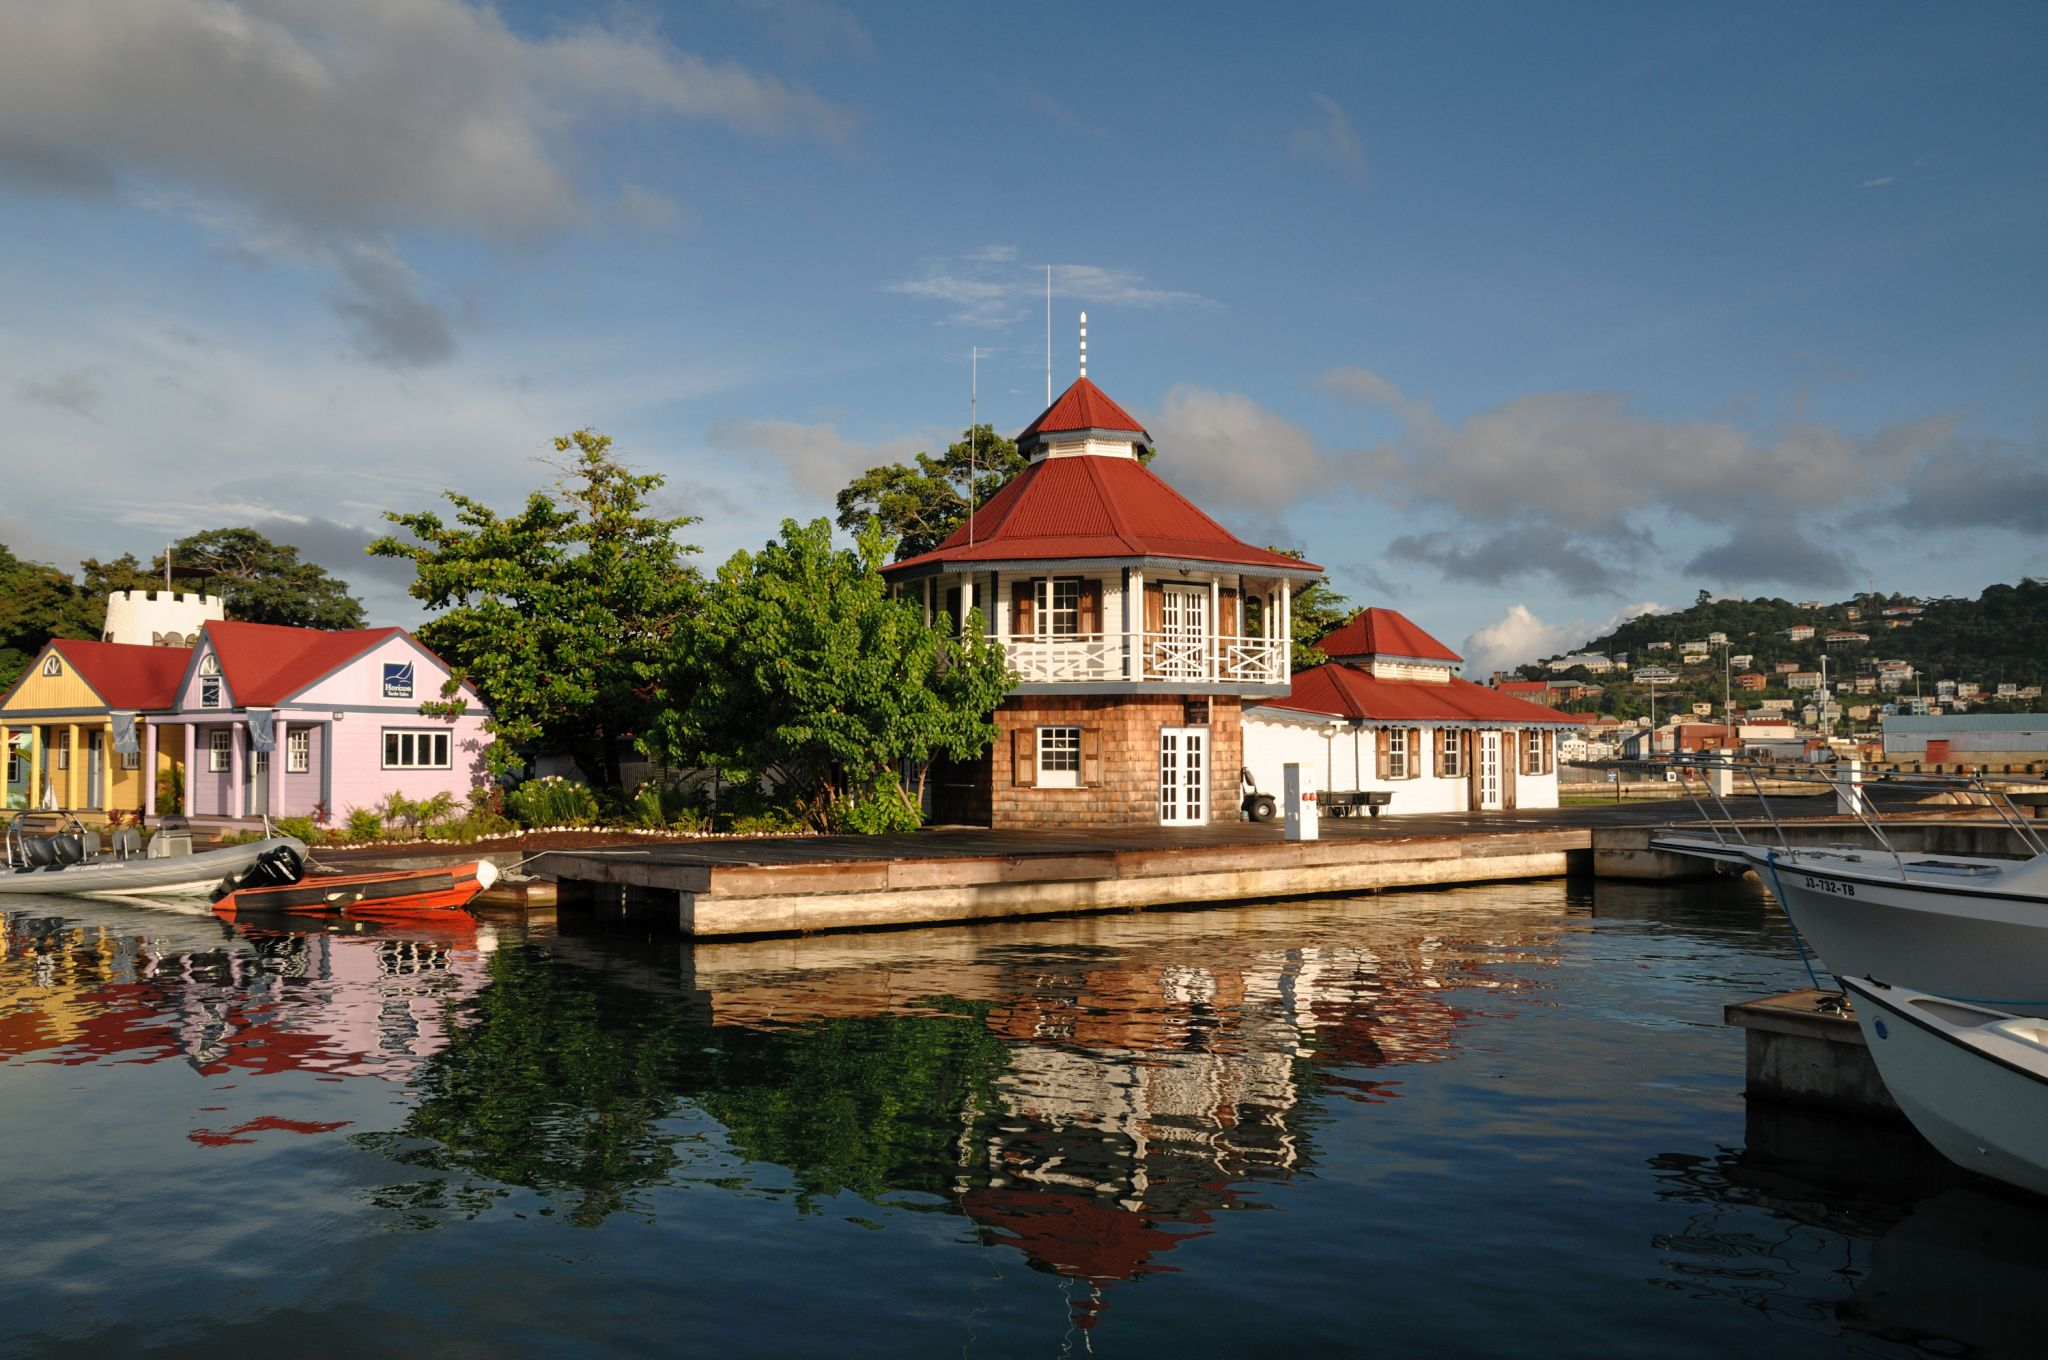 Habour St. Georges, Grenada